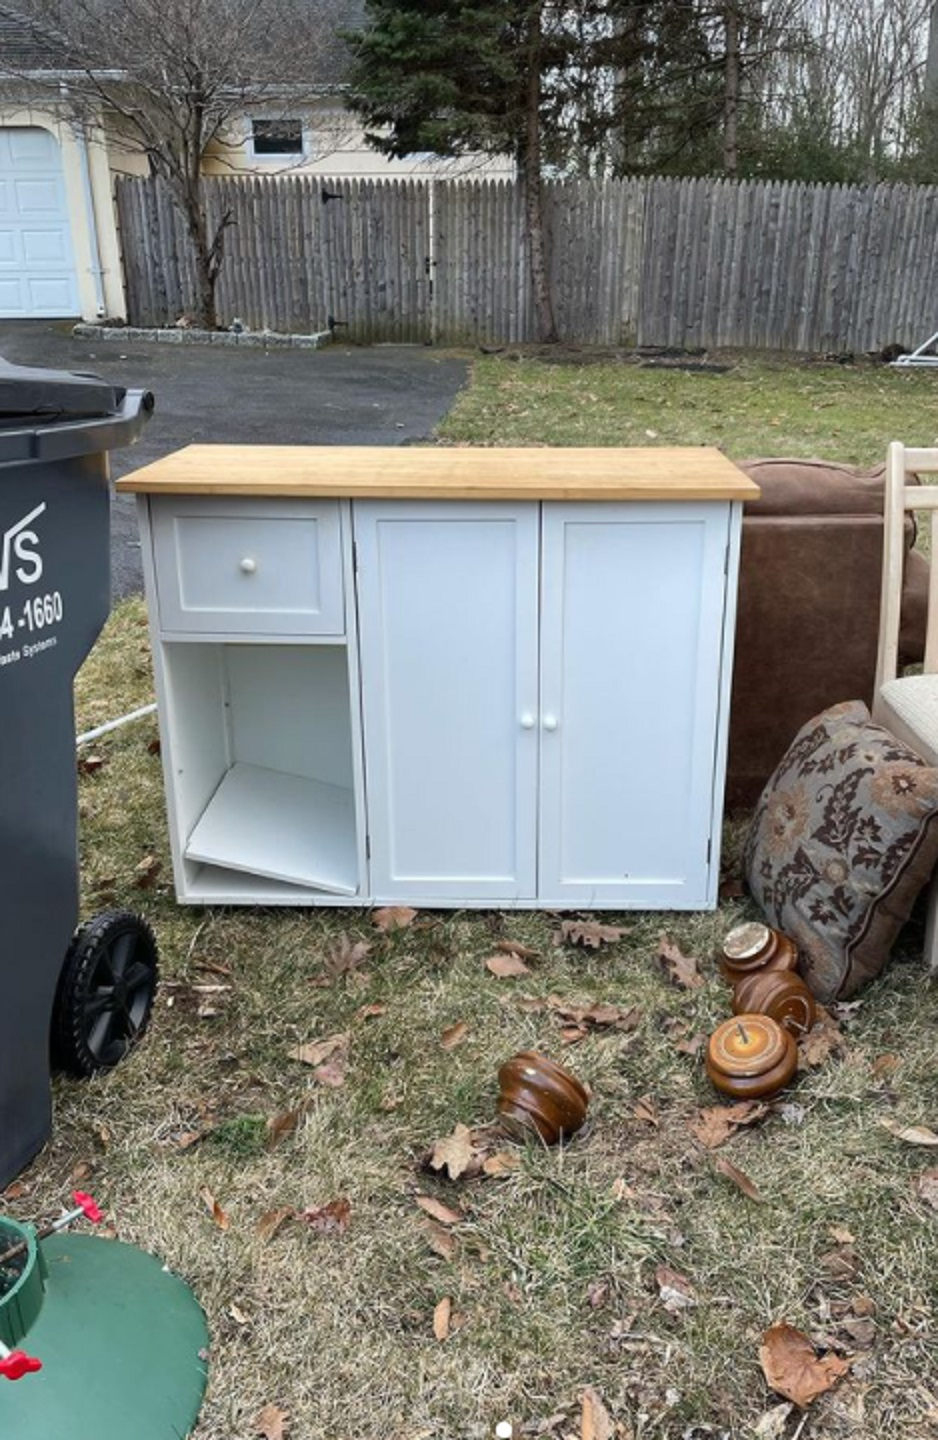 the old IKEA sideboard out in the trash